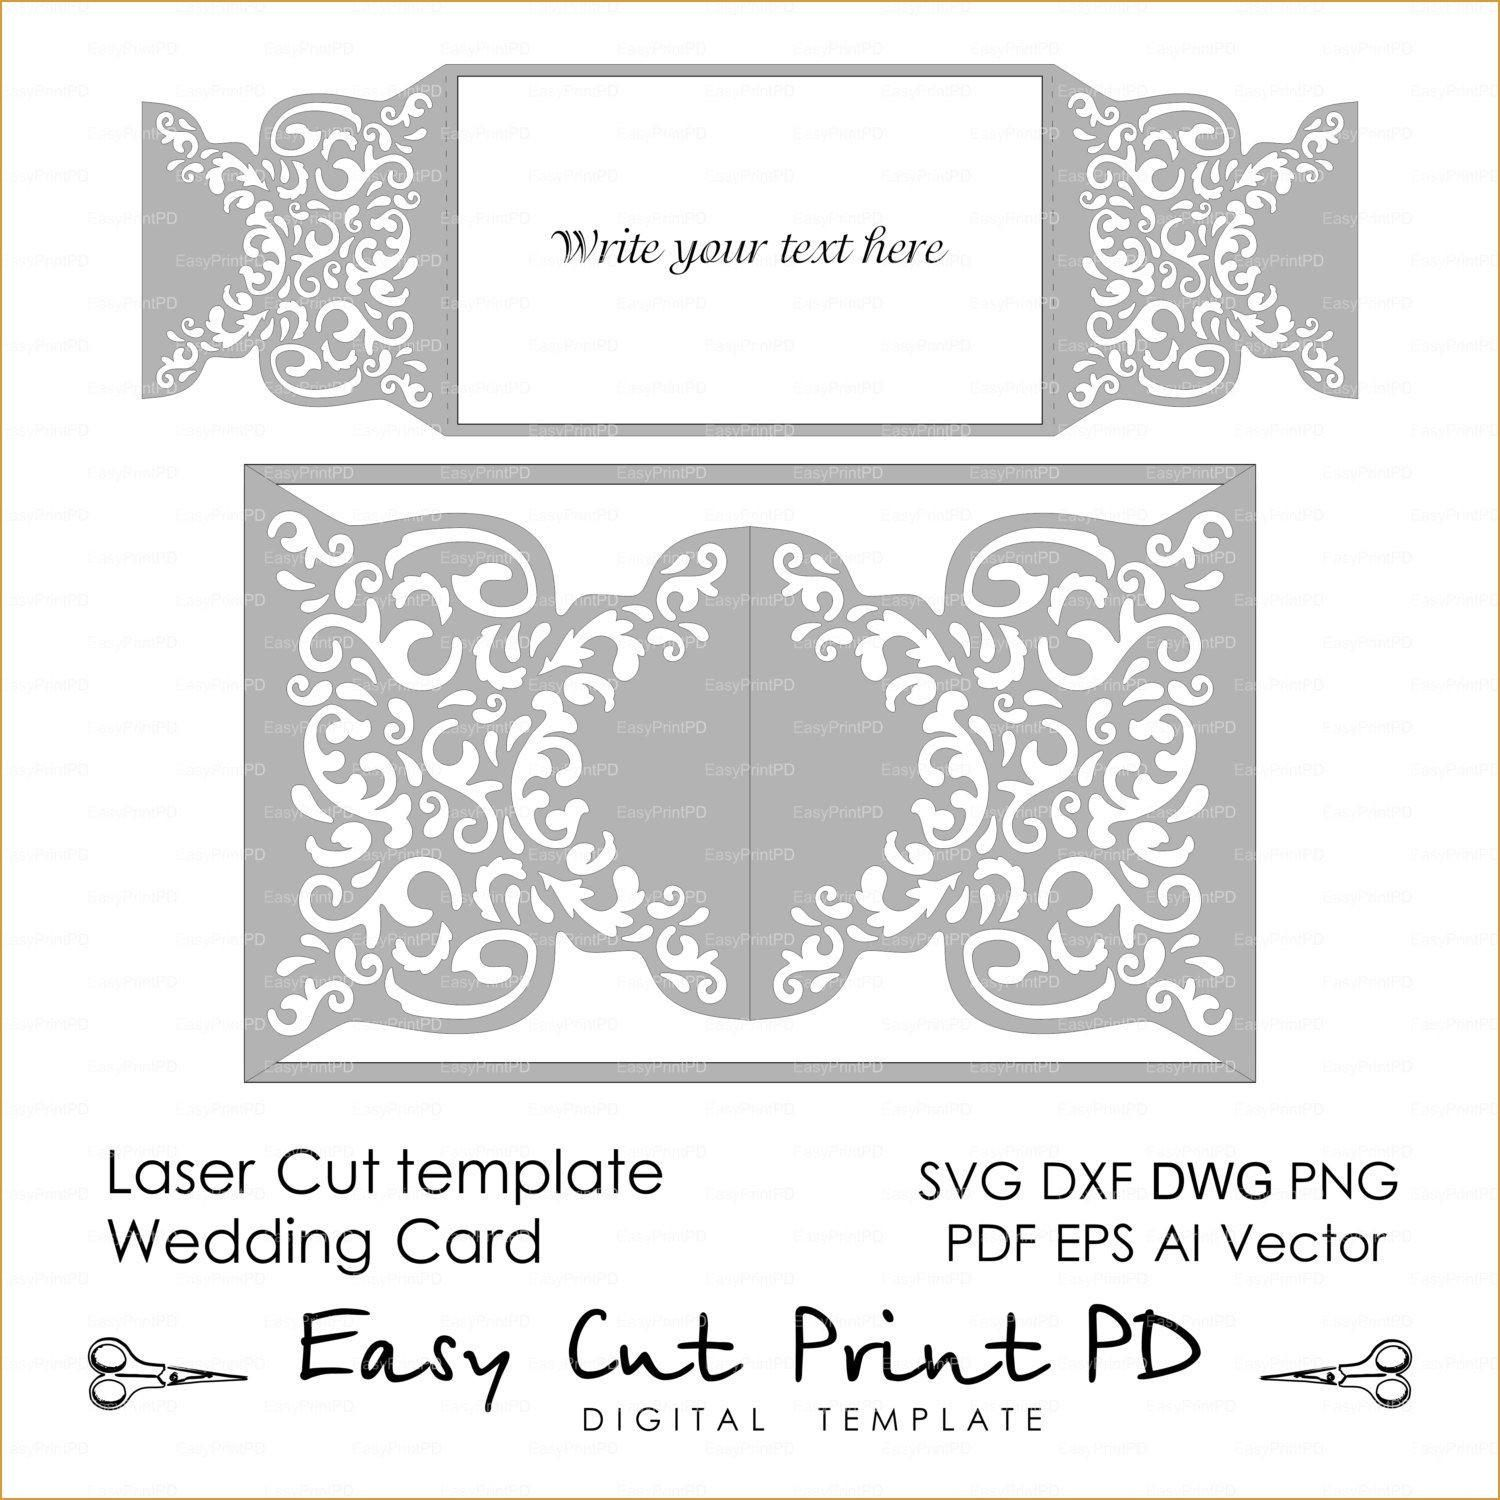 10 Invitation Printing Near Me in 2020 | Card patterns ...